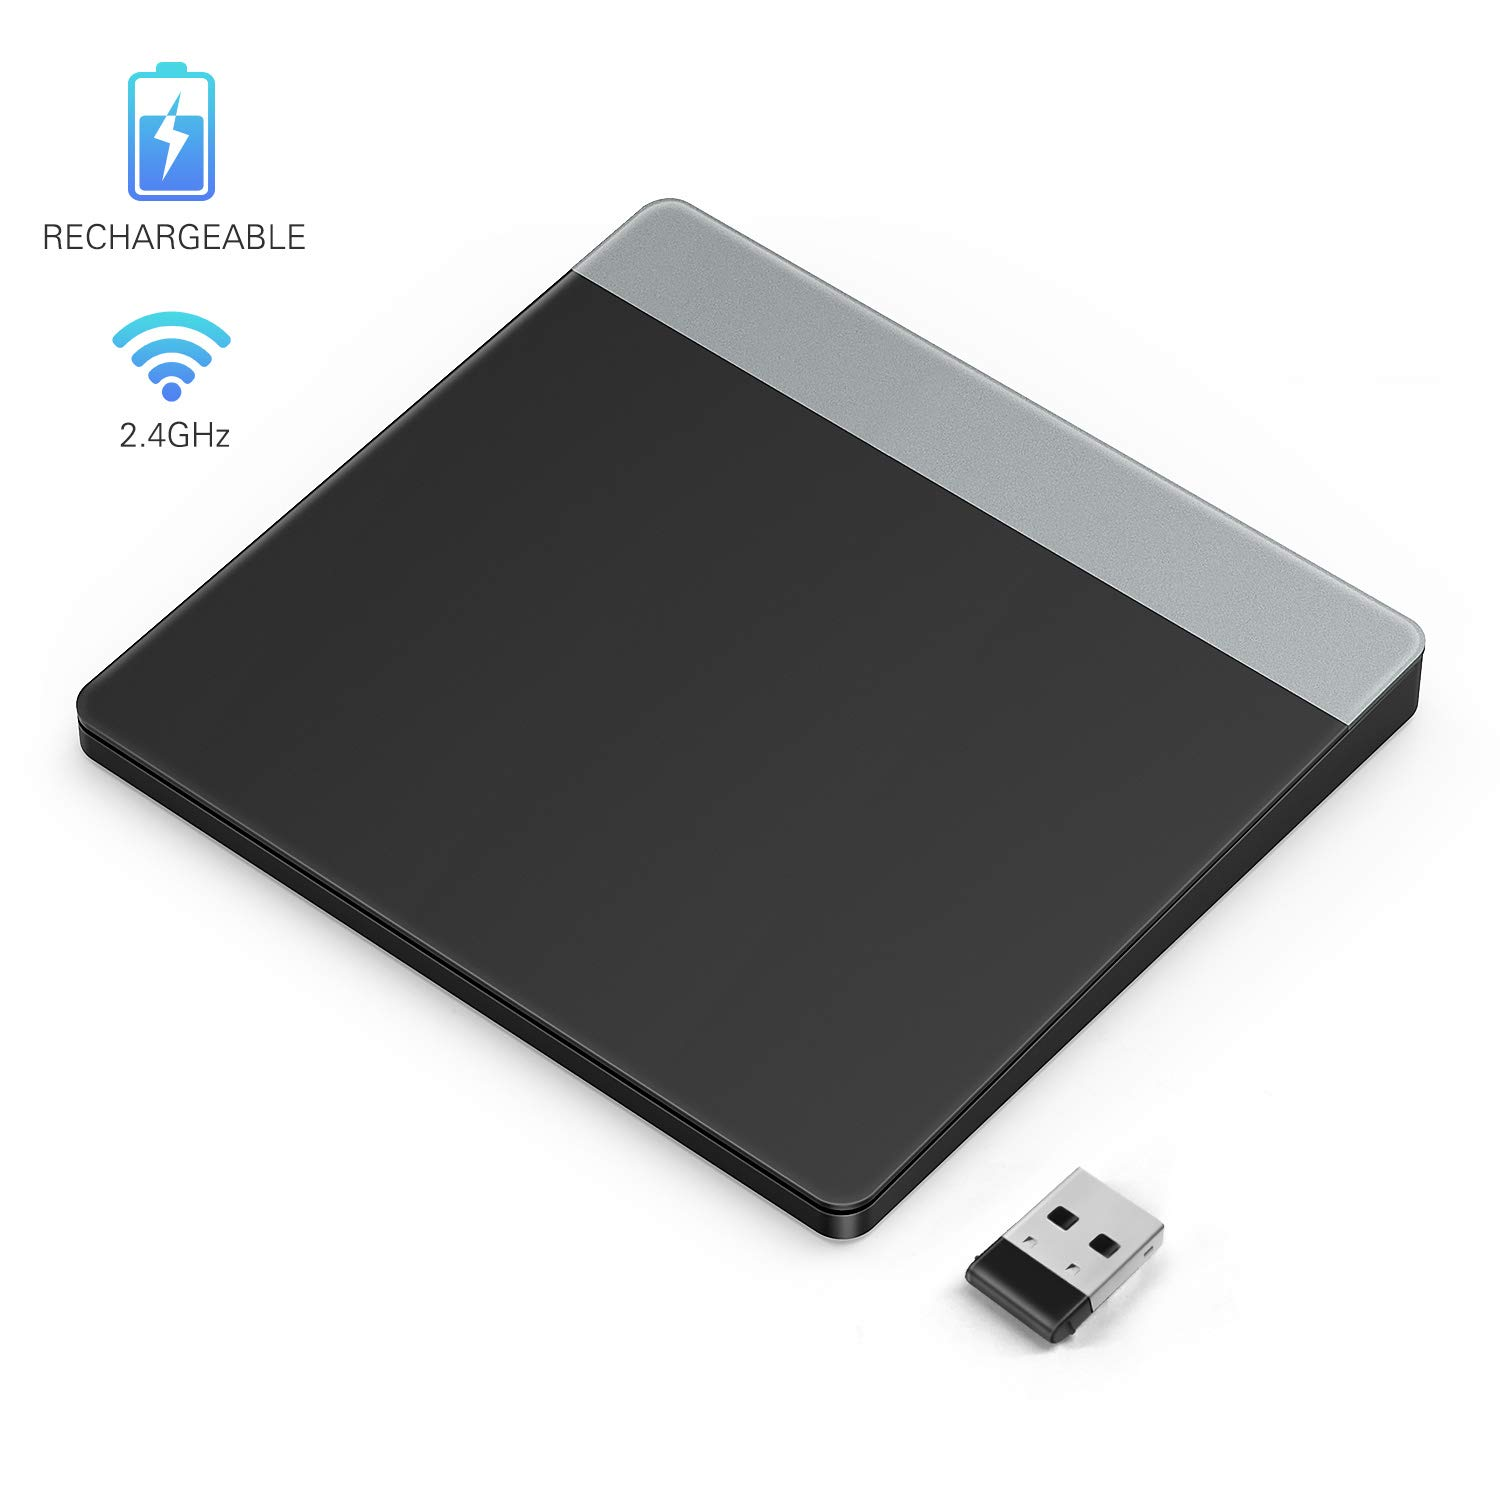 Wireless Precision Trackpad, Jelly Comb 2.4GHz Rechargeable Touchpad with Nano Receiver for Windows 7 and Windows 10 Computer, Notebook, PC, Laptop -Black by Jelly Comb